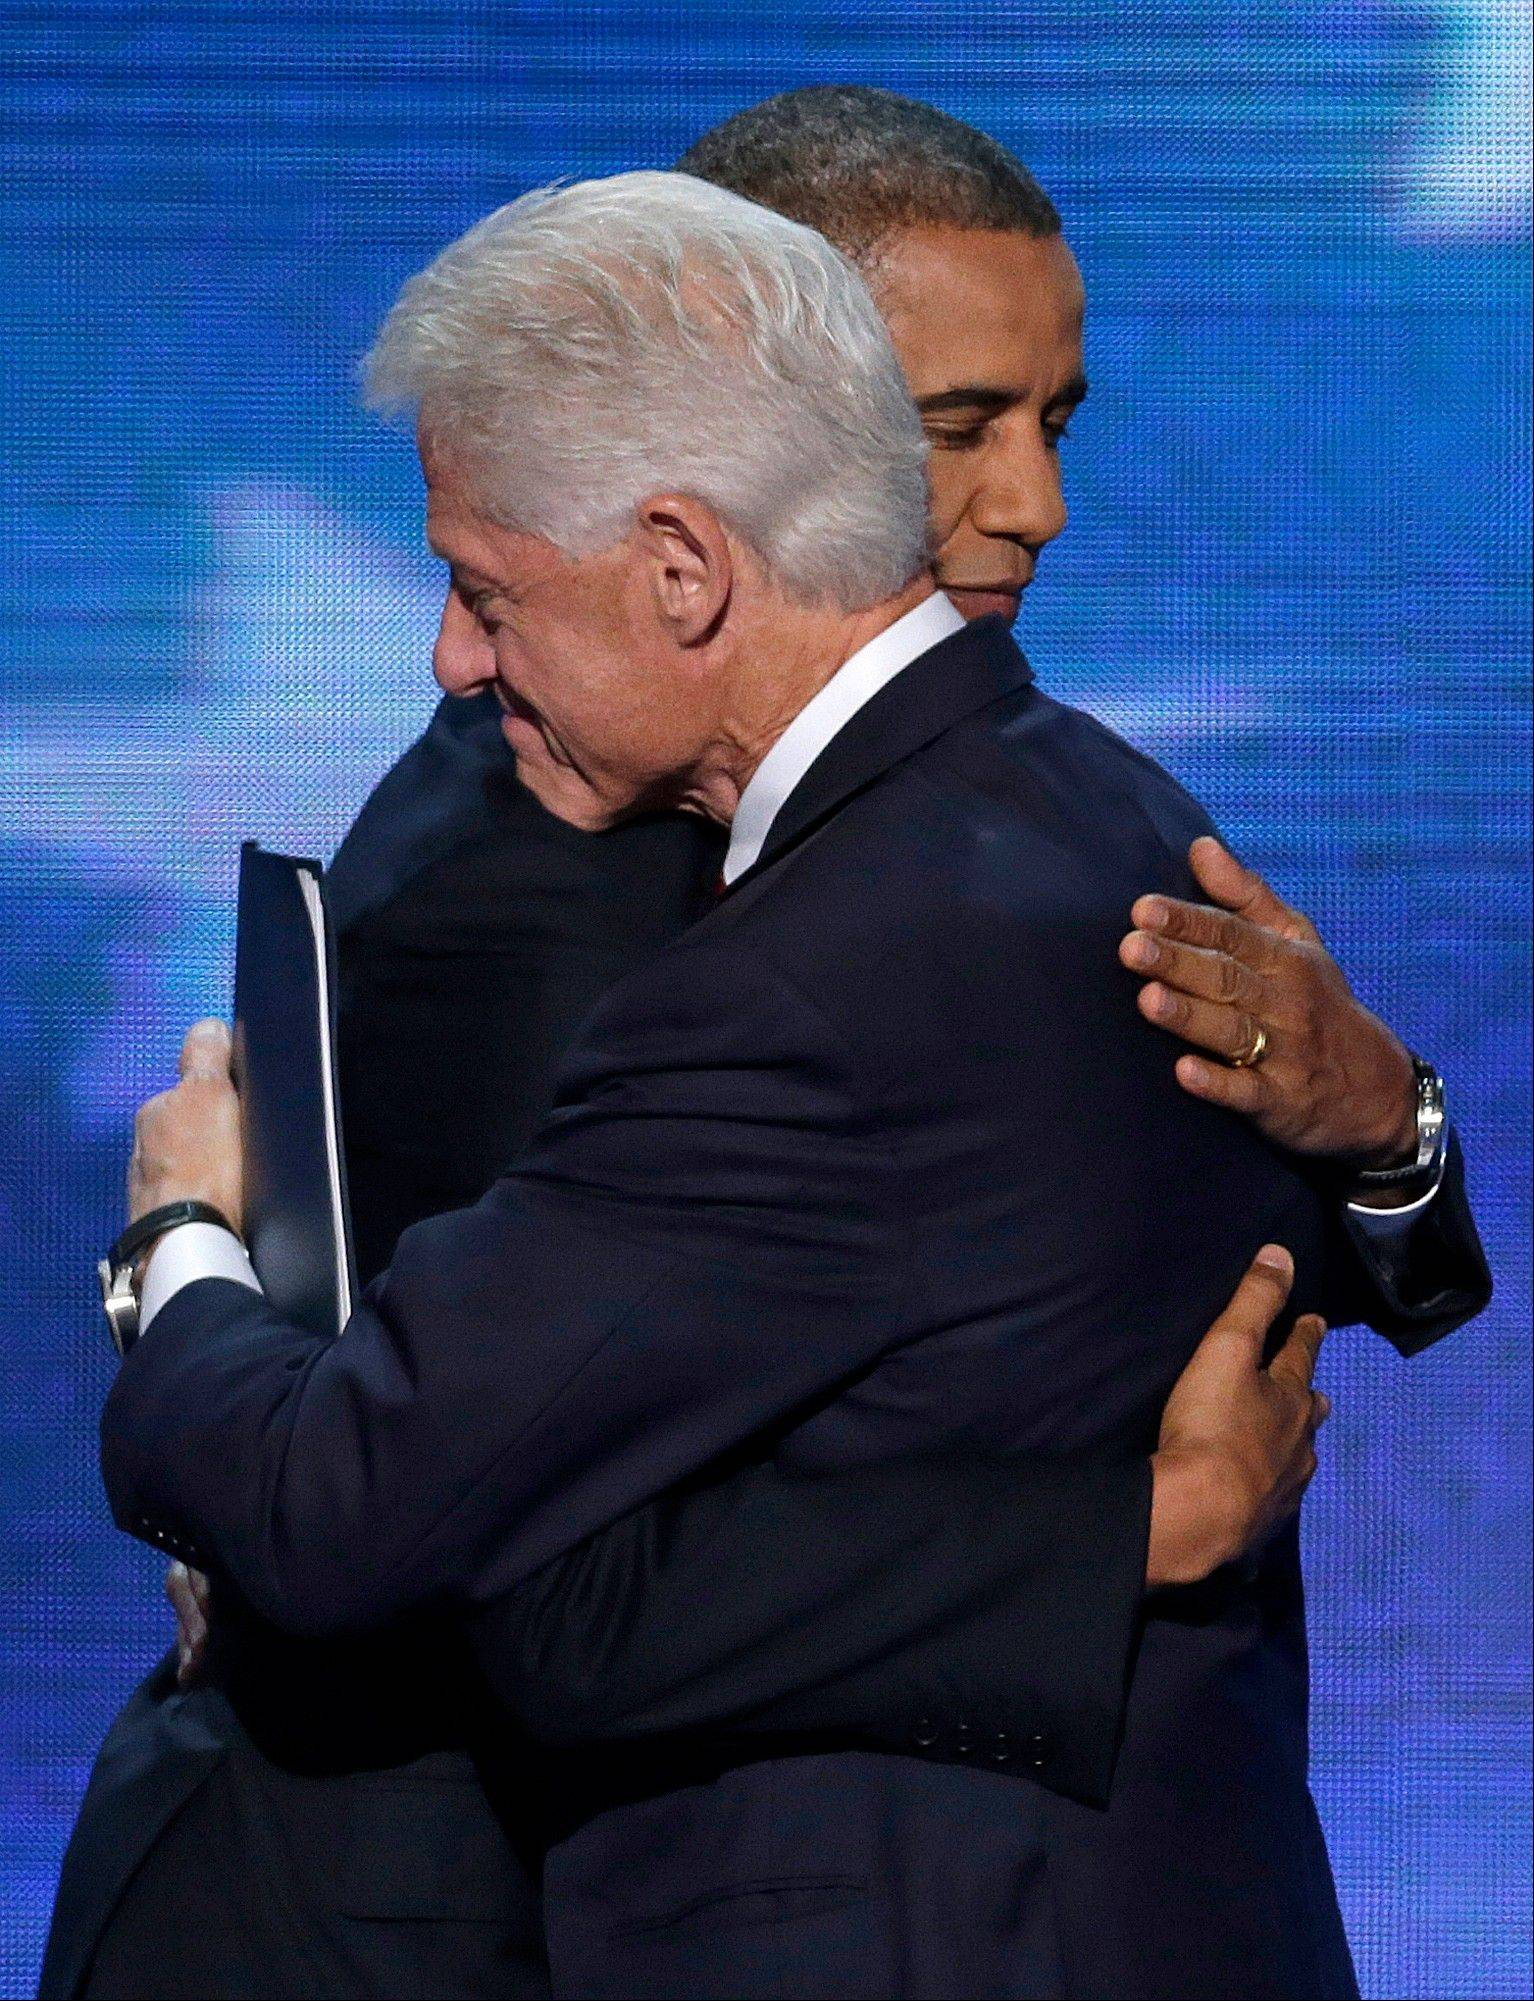 Former President Bill Clinton hugs President Barack Obama after President Obama walked on stage after Clinton's speech the Democratic National Convention in Charlotte, N.C., on Wednesday, Sept. 5, 2012.